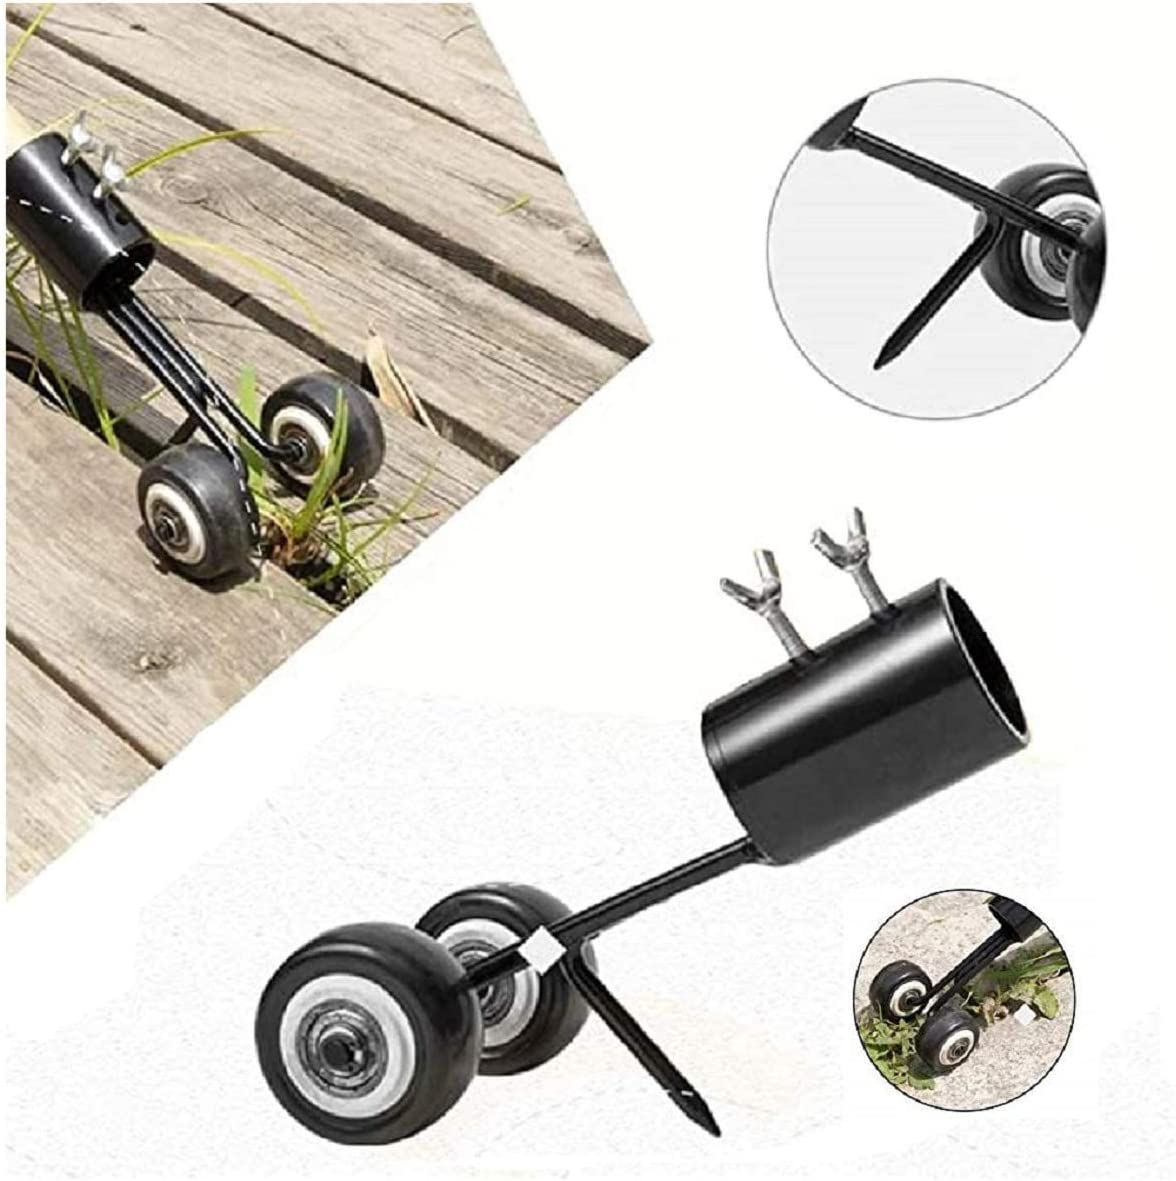 SBSNM Mintiml Weeds Snatcher No-Bend Weeding Gardening Weeds Snatcher,Garden Stand-Up Weederand Root Removal Tool